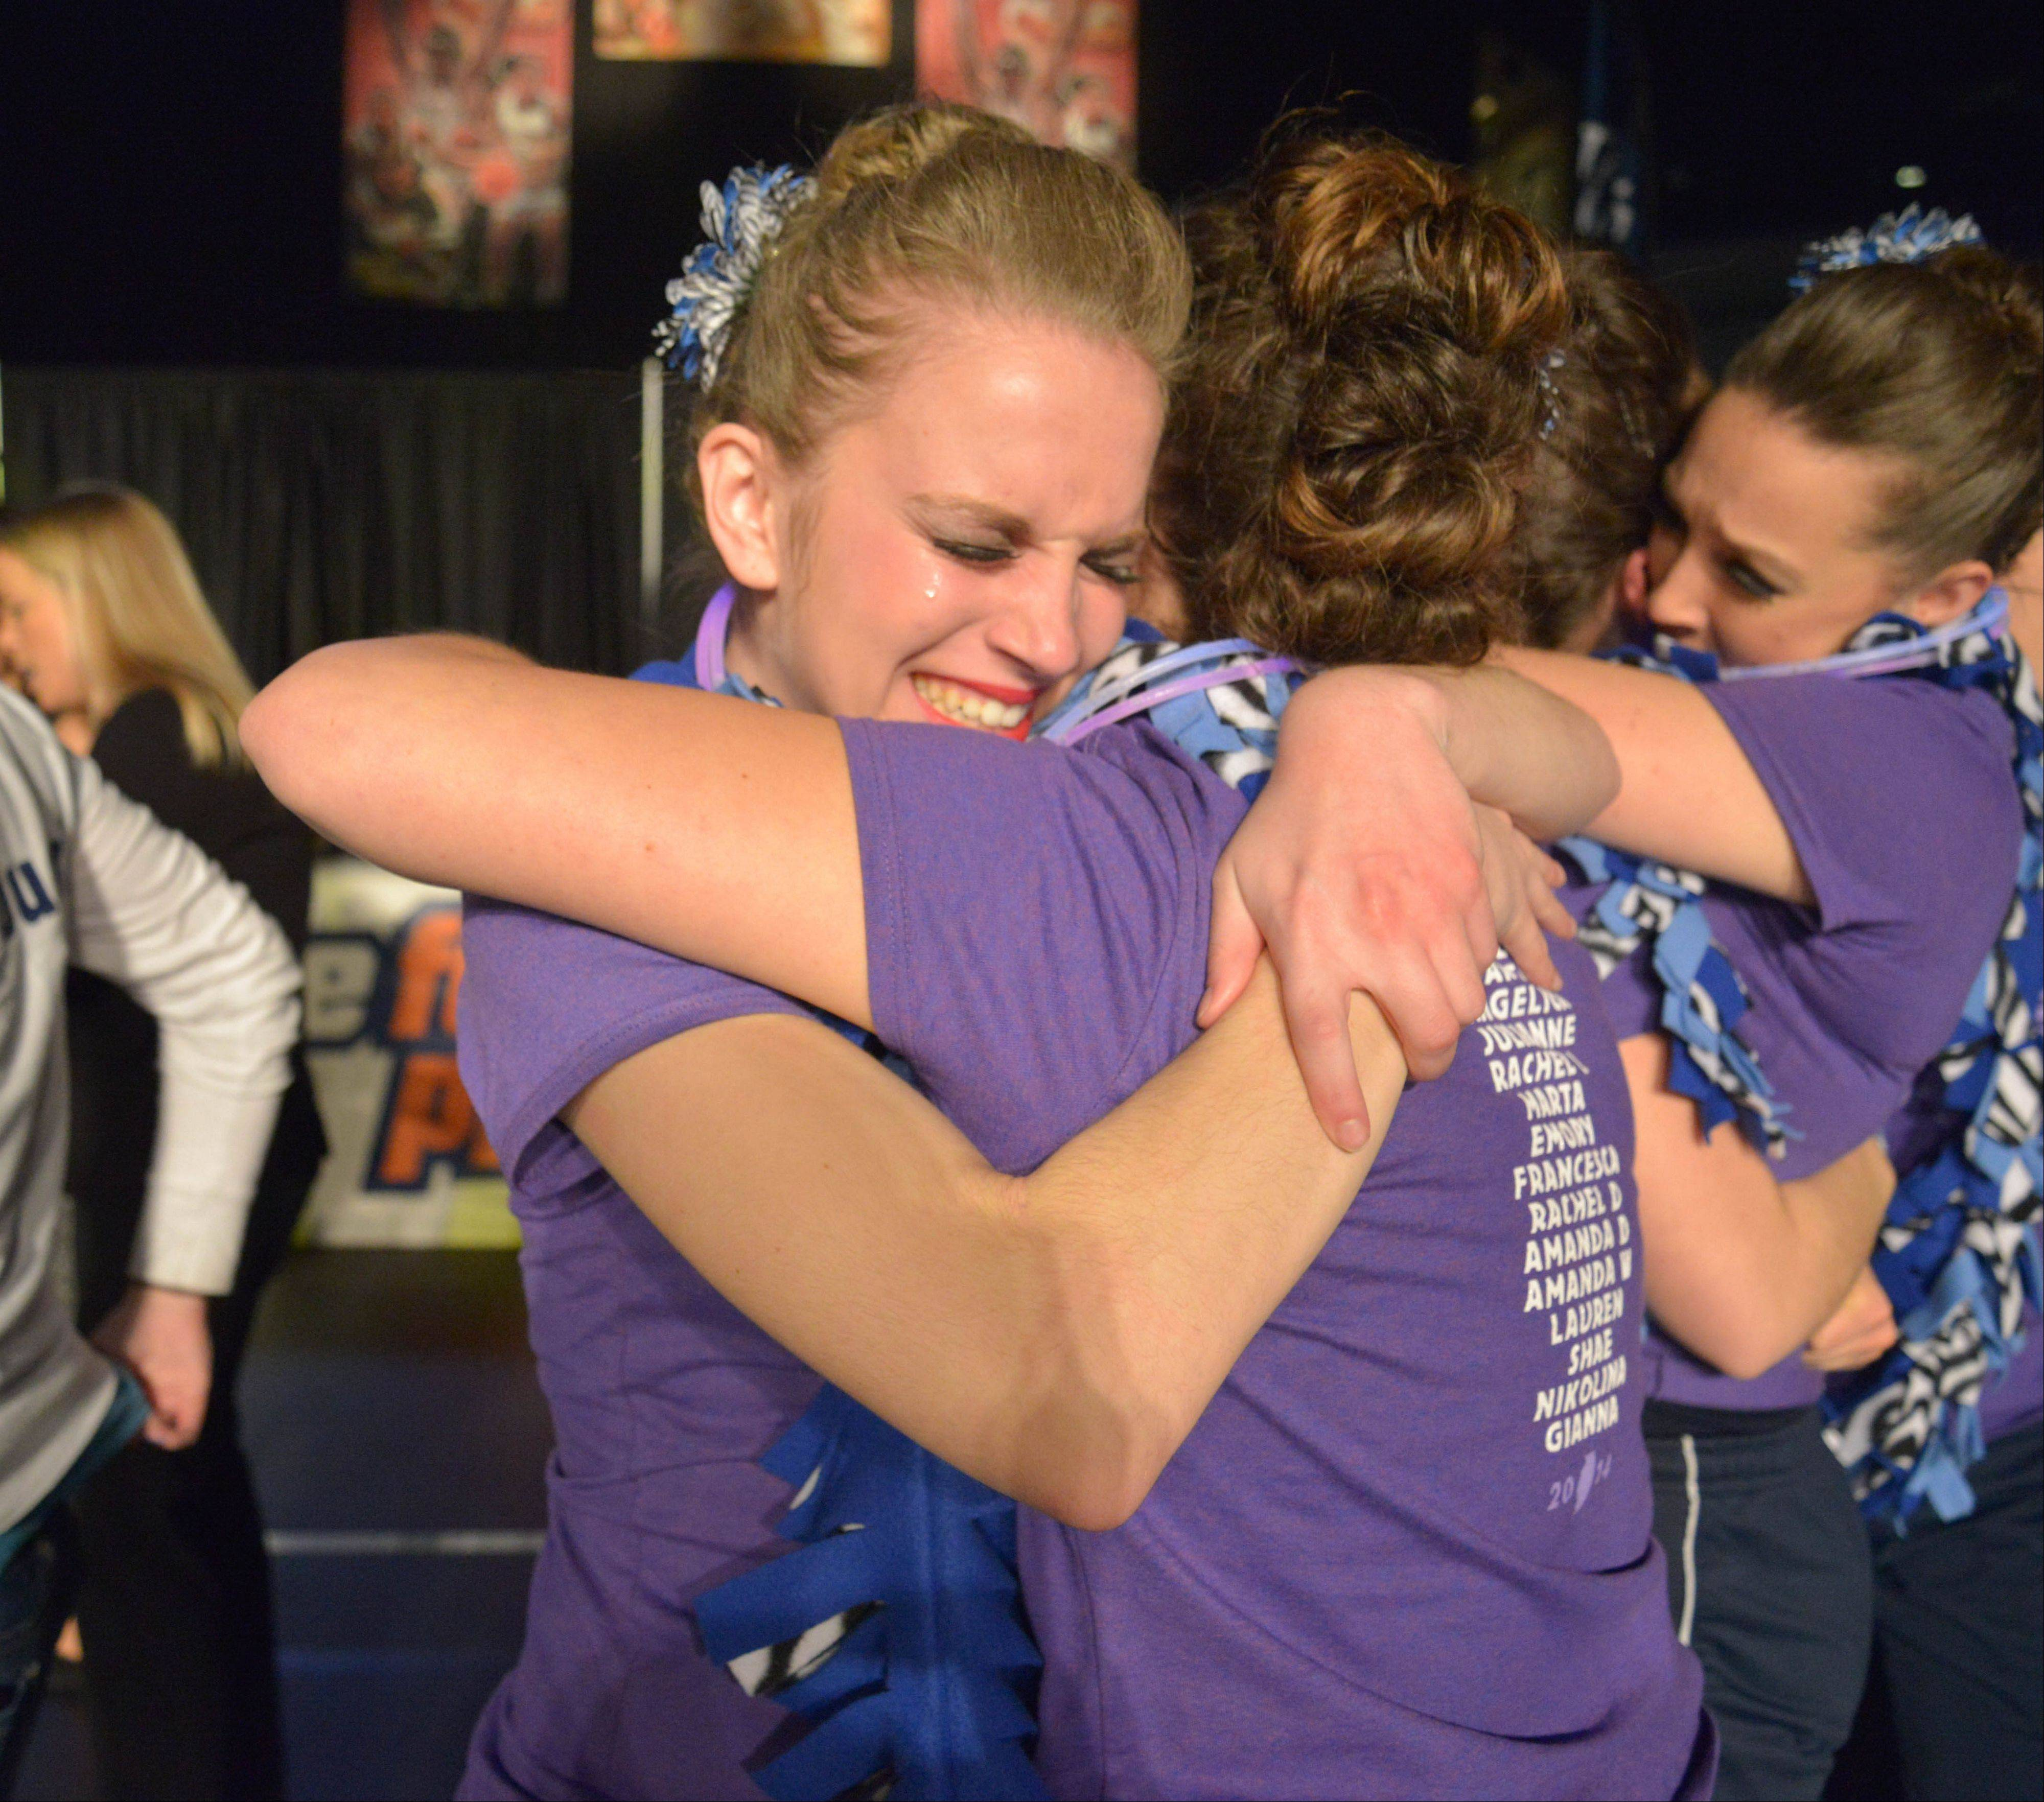 Gianna Mazeska of Lake Park High School can't hold back the tears of joy after winning First place in the 3A IHSA Dance State Final at U.S. Cellular Coliseum in Bloomington Saturday. 90 teams vied for state champion at this event.